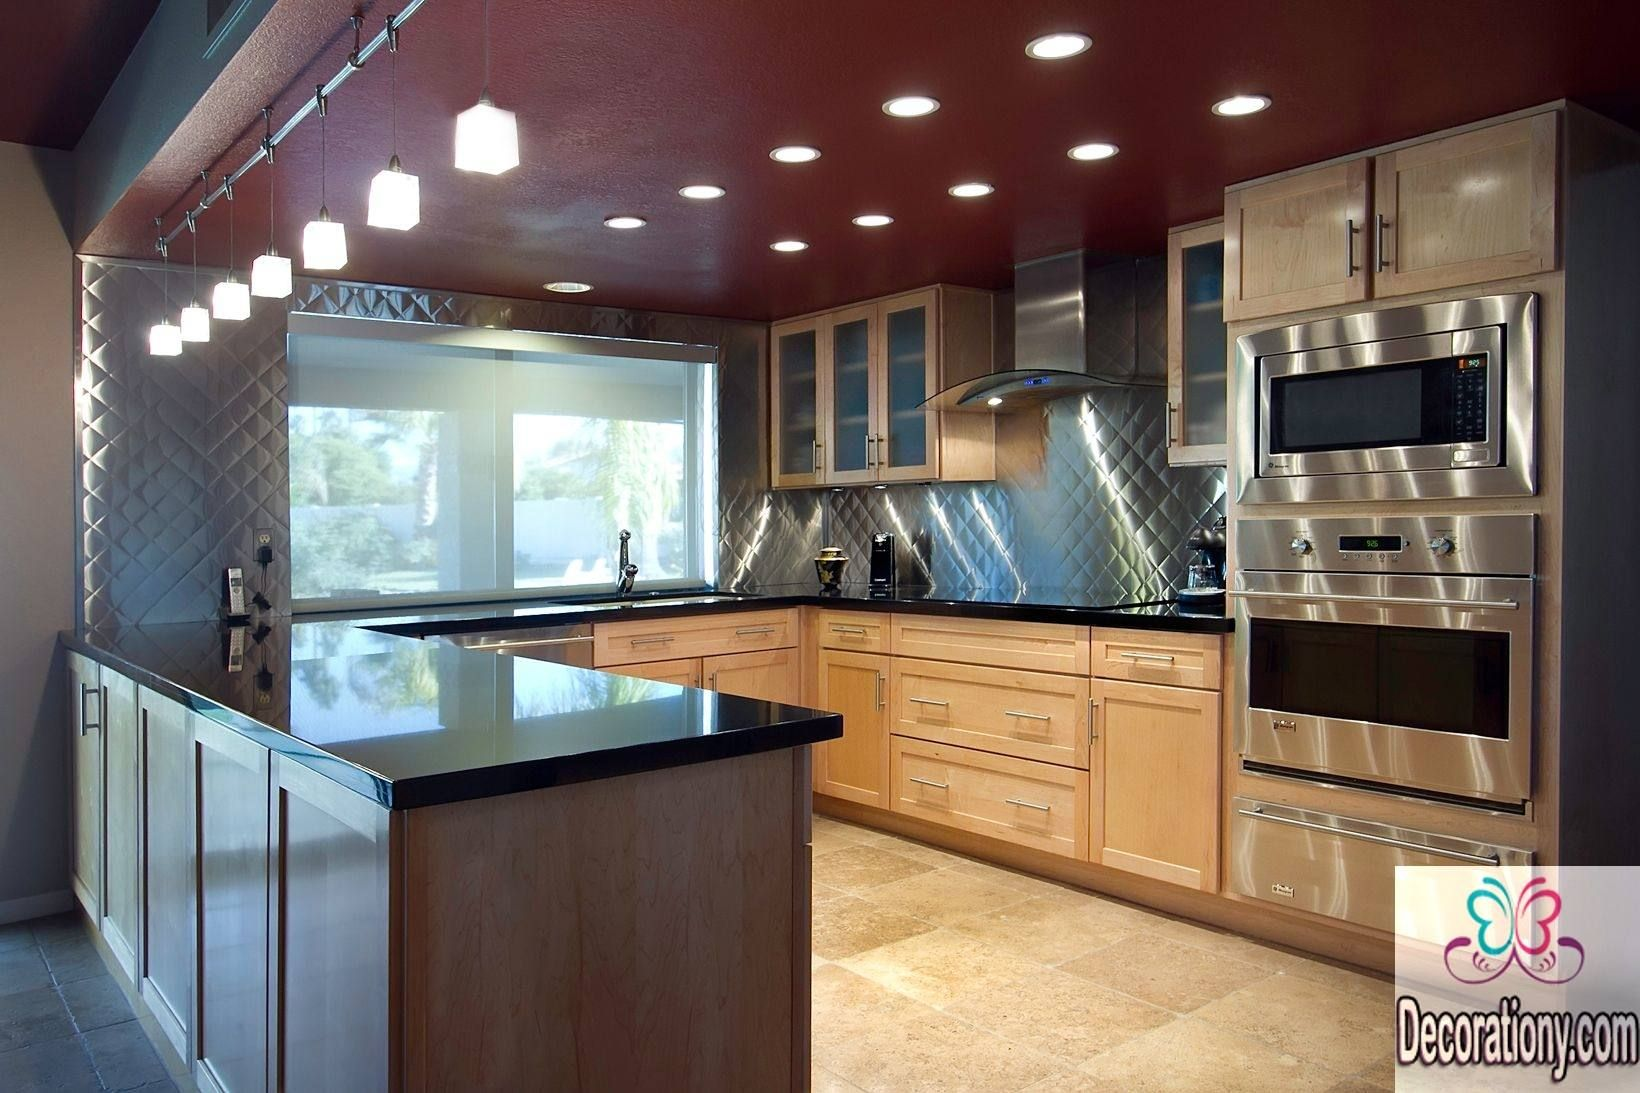 Latest Kitchen Remodel Ideas Cabinet Refacing Remodeling Small For Brand New Look Home Interior Design